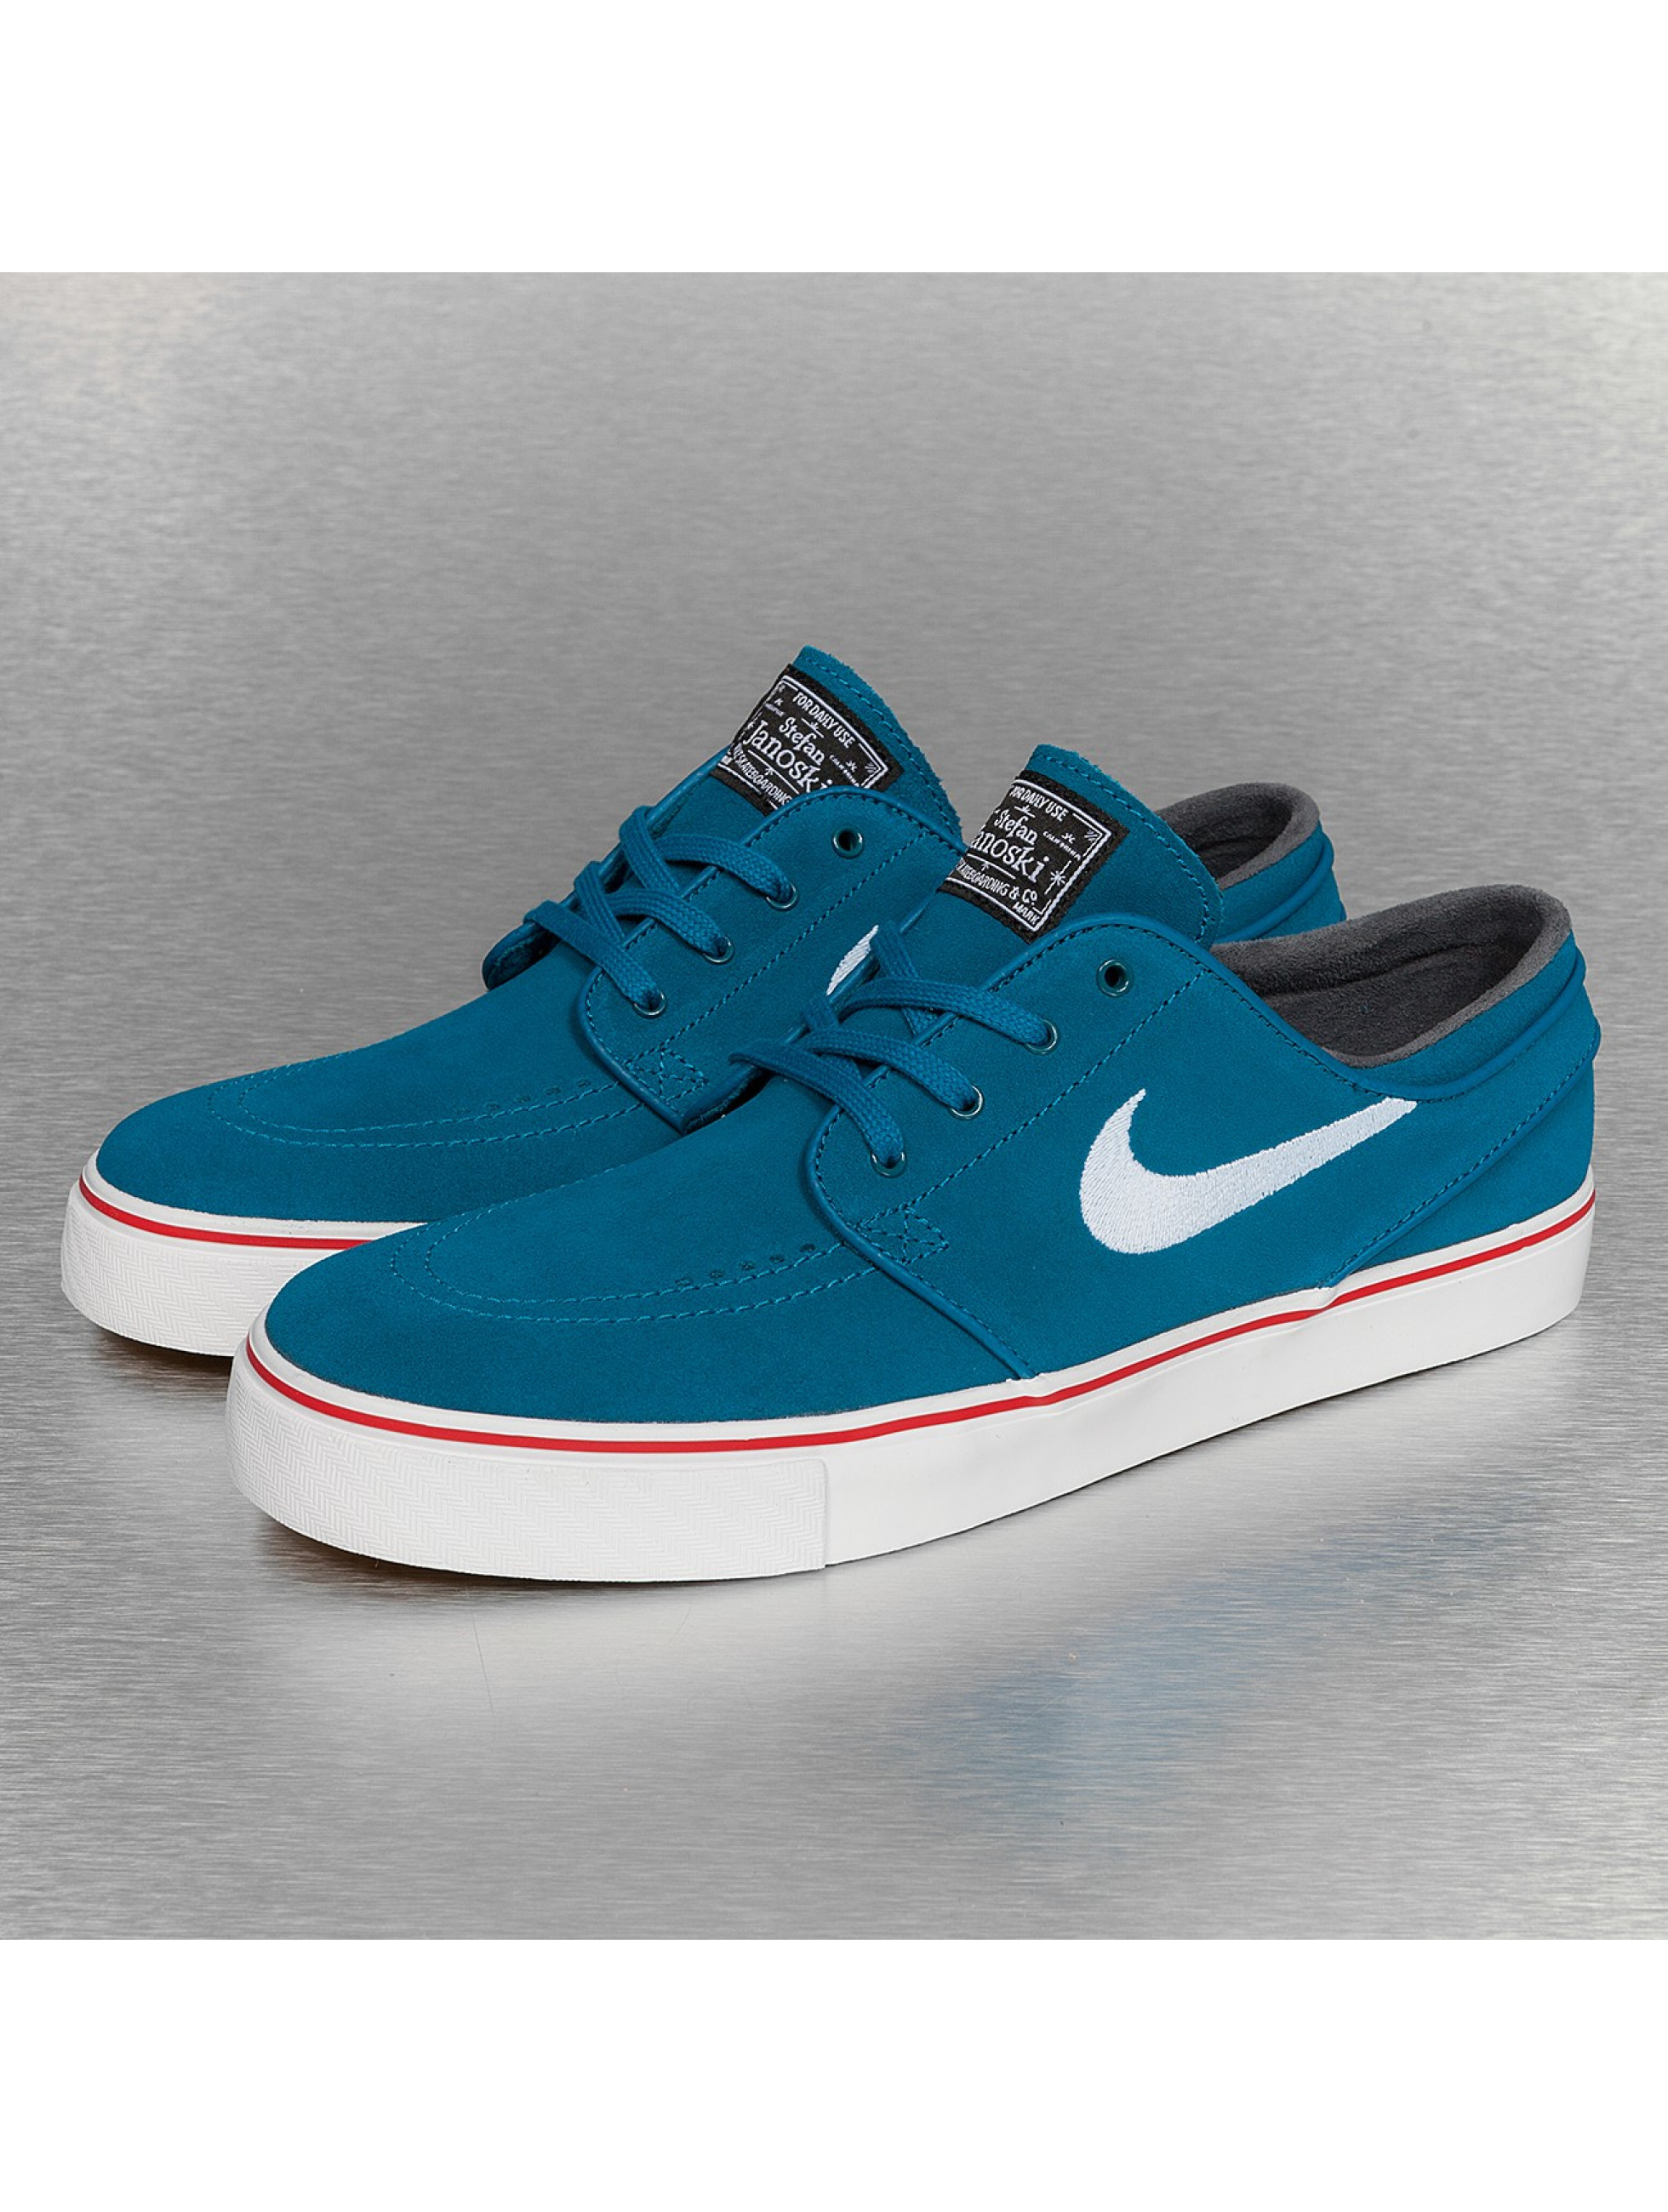 nike stefan janoski bleu et noir levidence. Black Bedroom Furniture Sets. Home Design Ideas